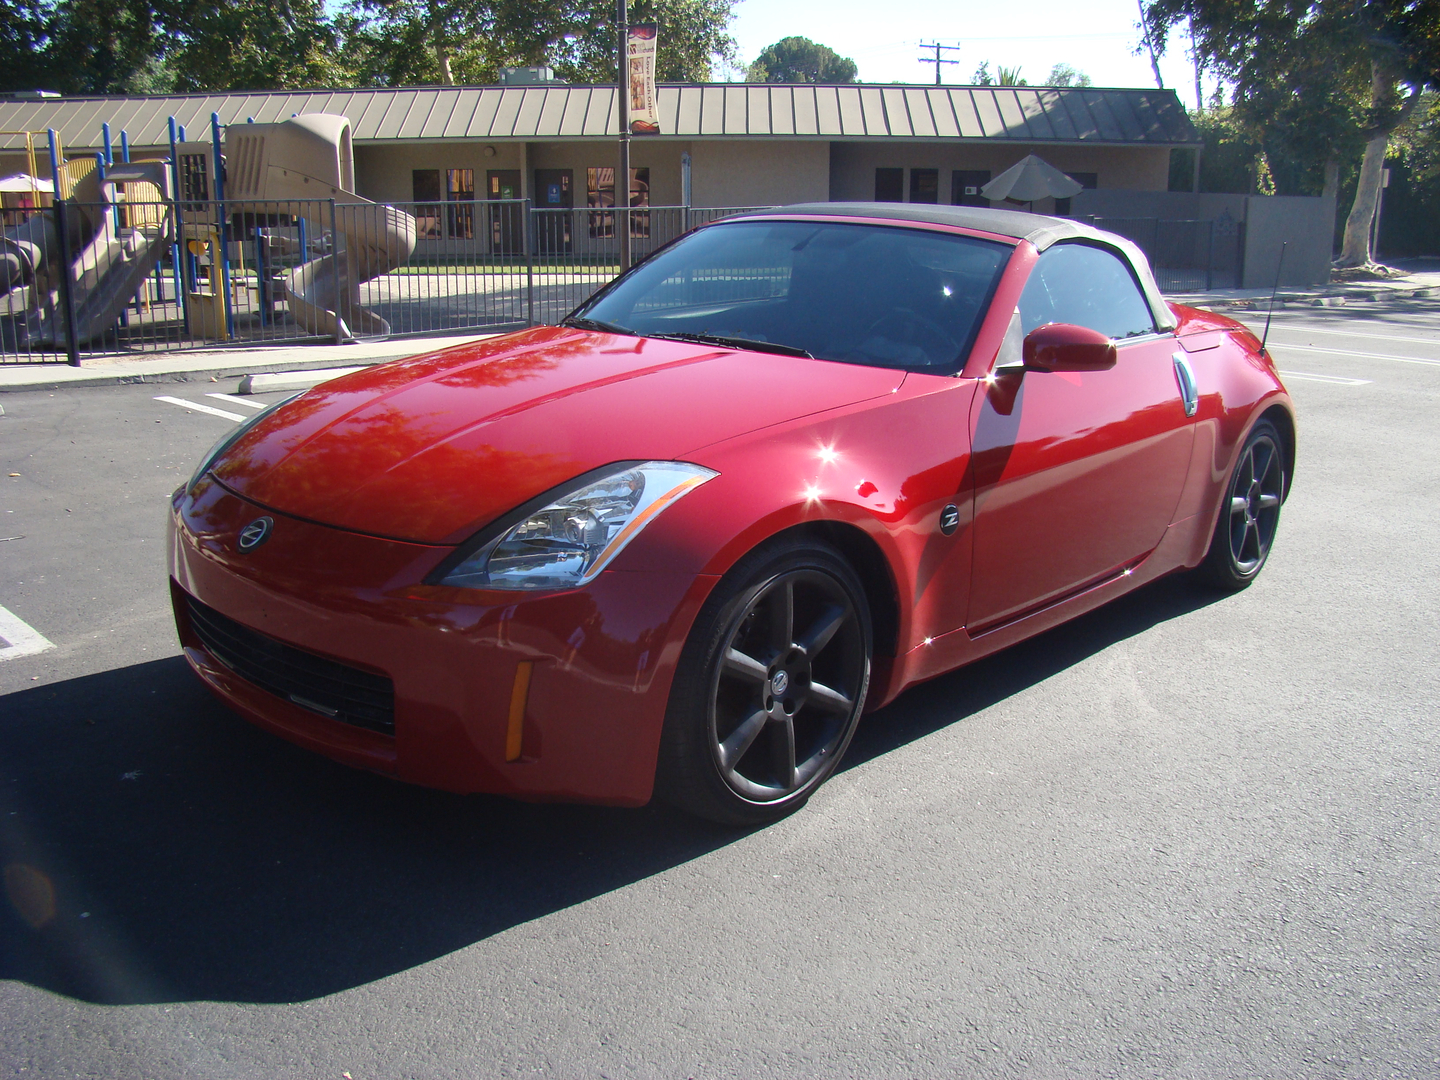 2005 nissan 350z red roadster 751493 vehicle details year 2005 sciox Image collections